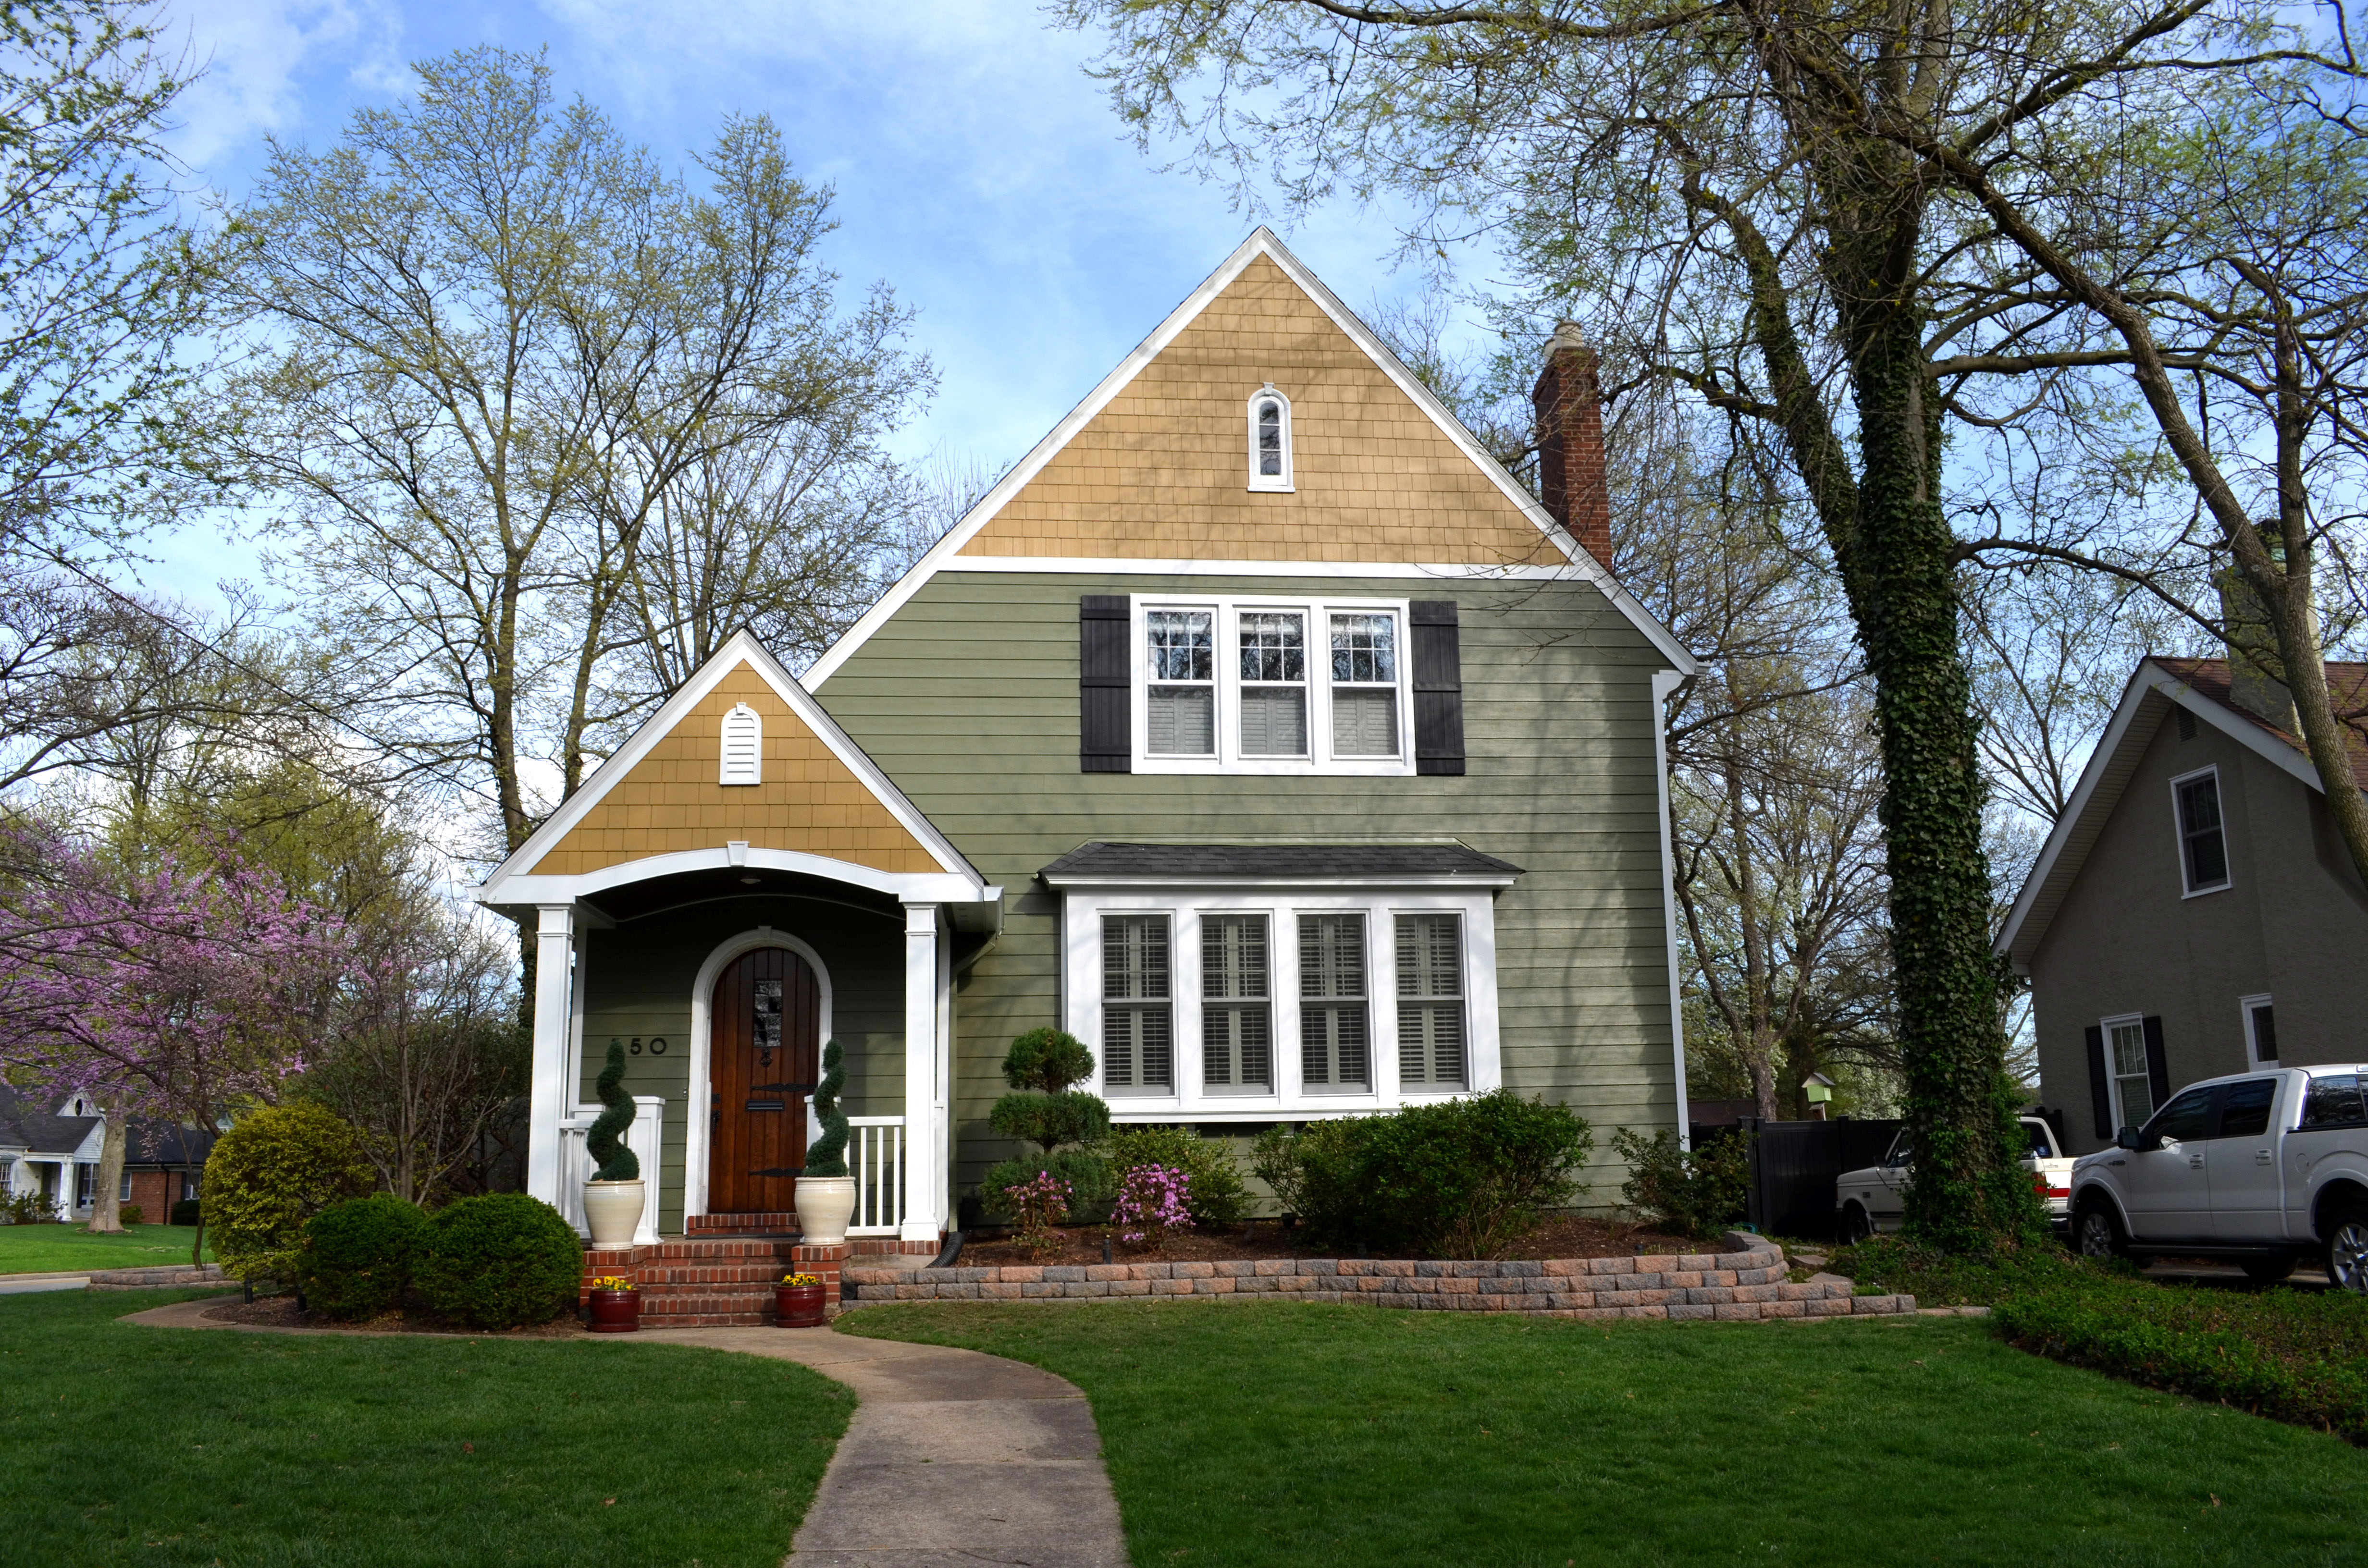 St Louis James Hardie Siding Pictures And Colors Hardie